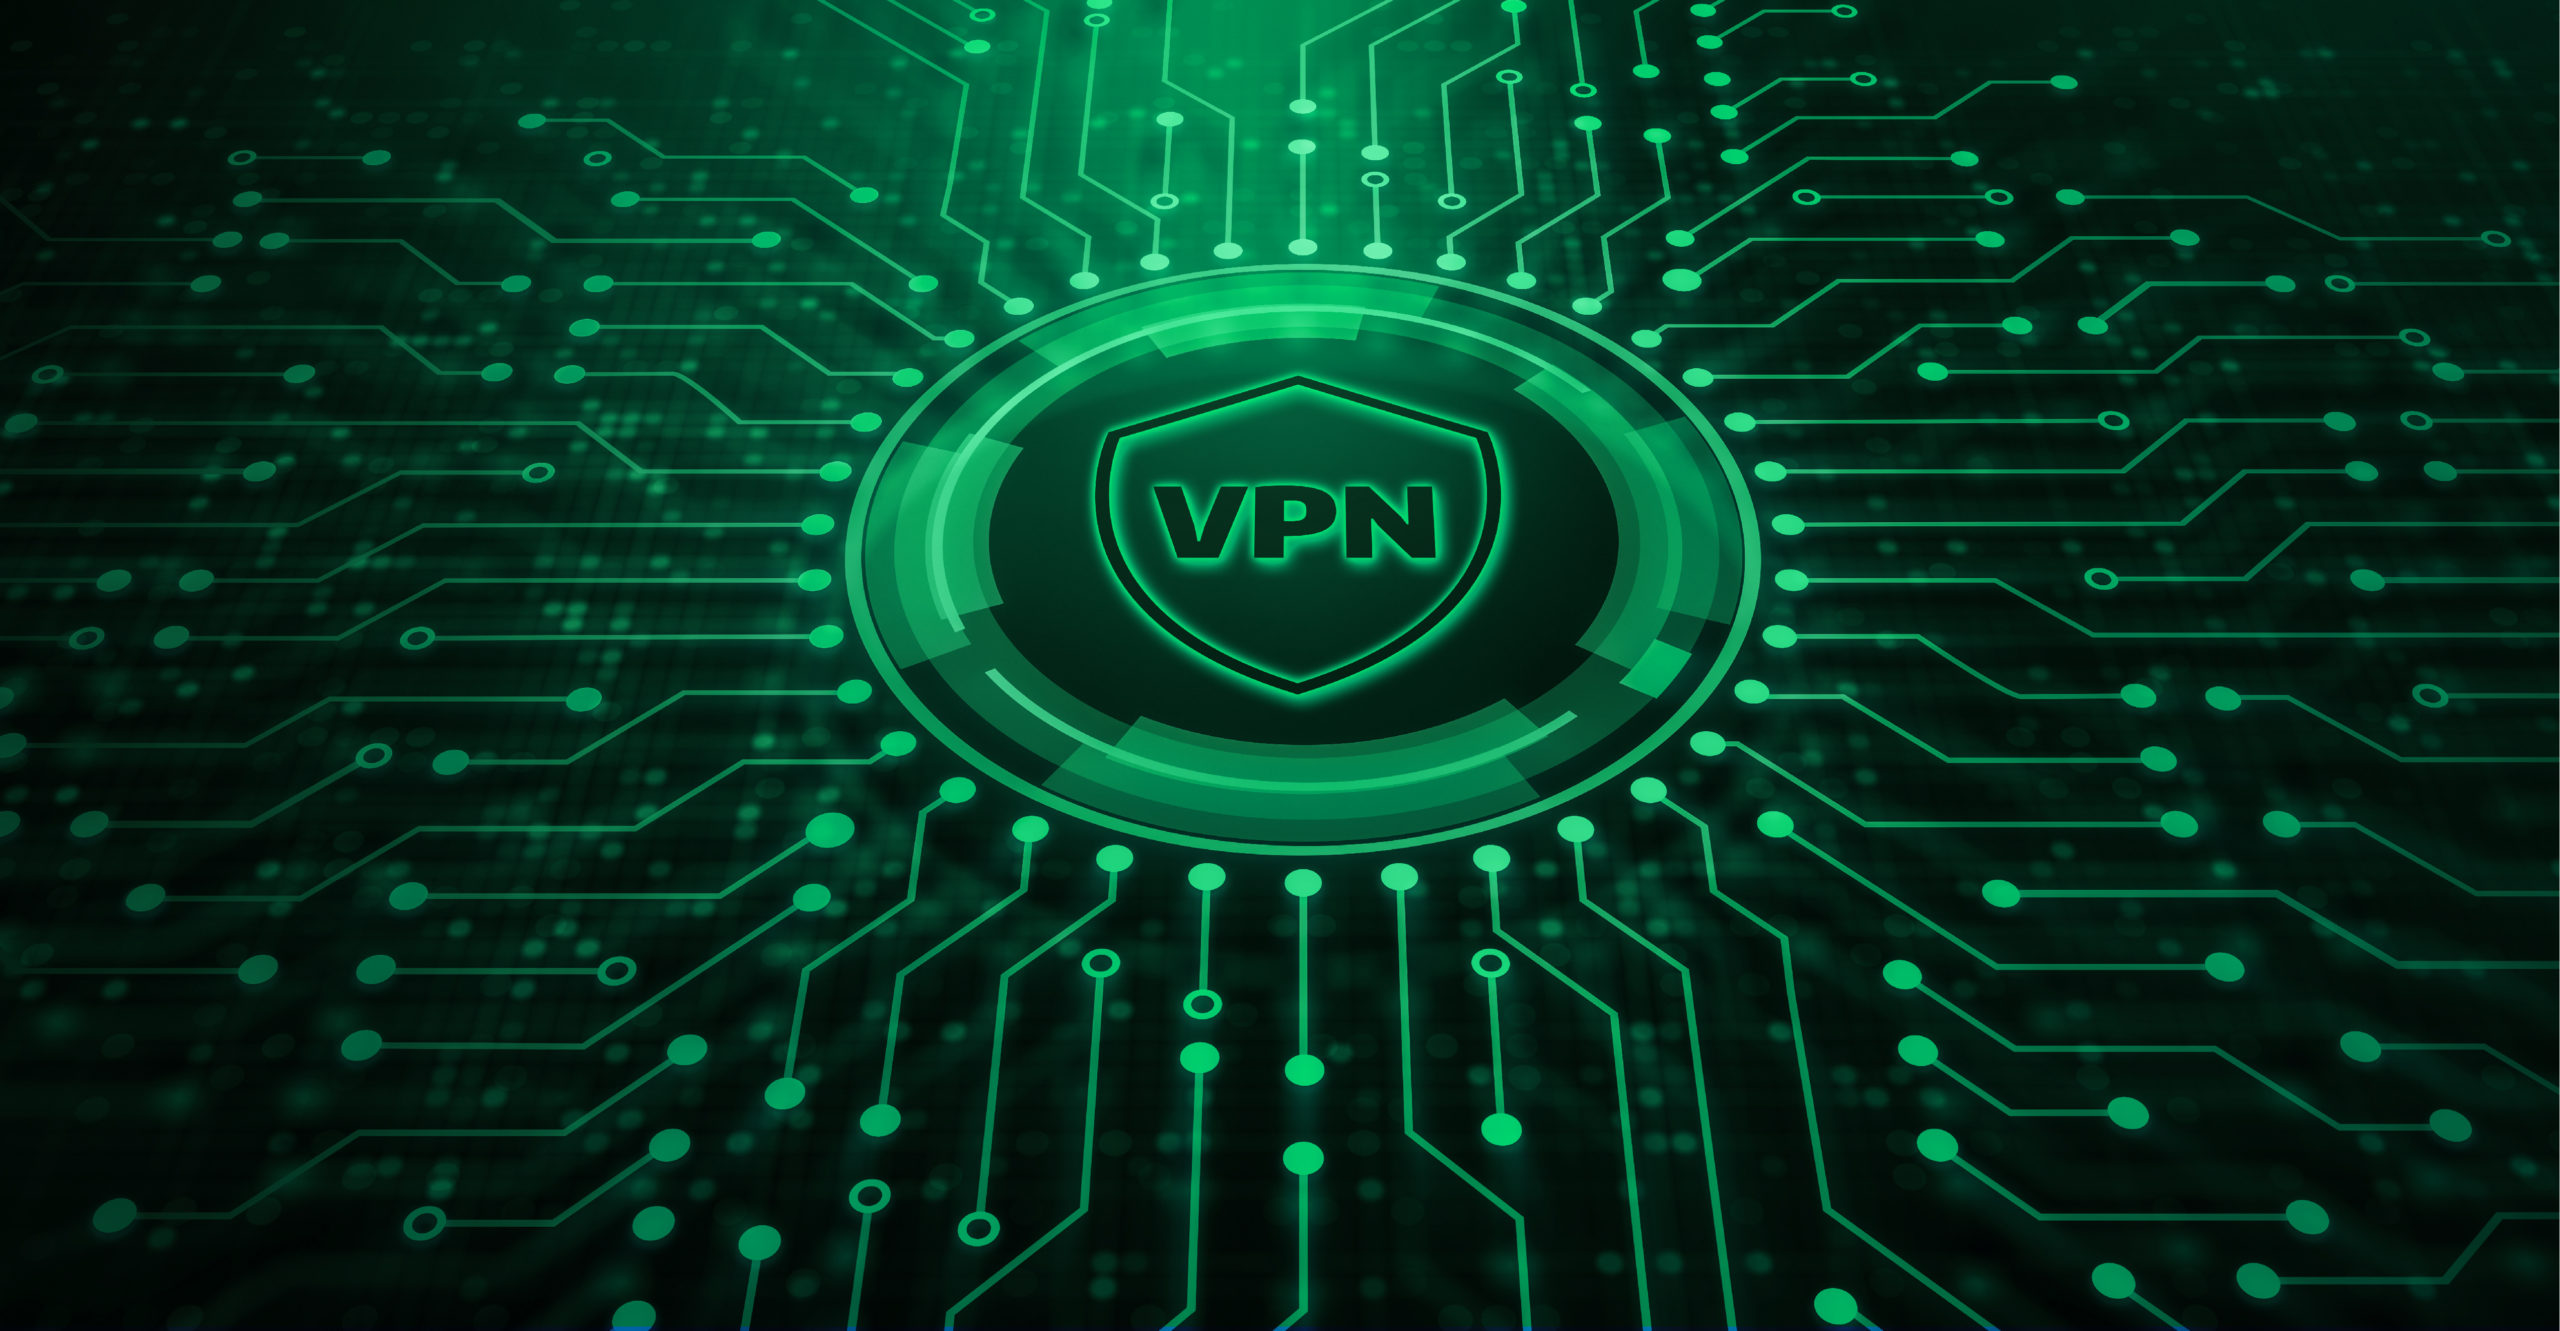 VPN Security Explained